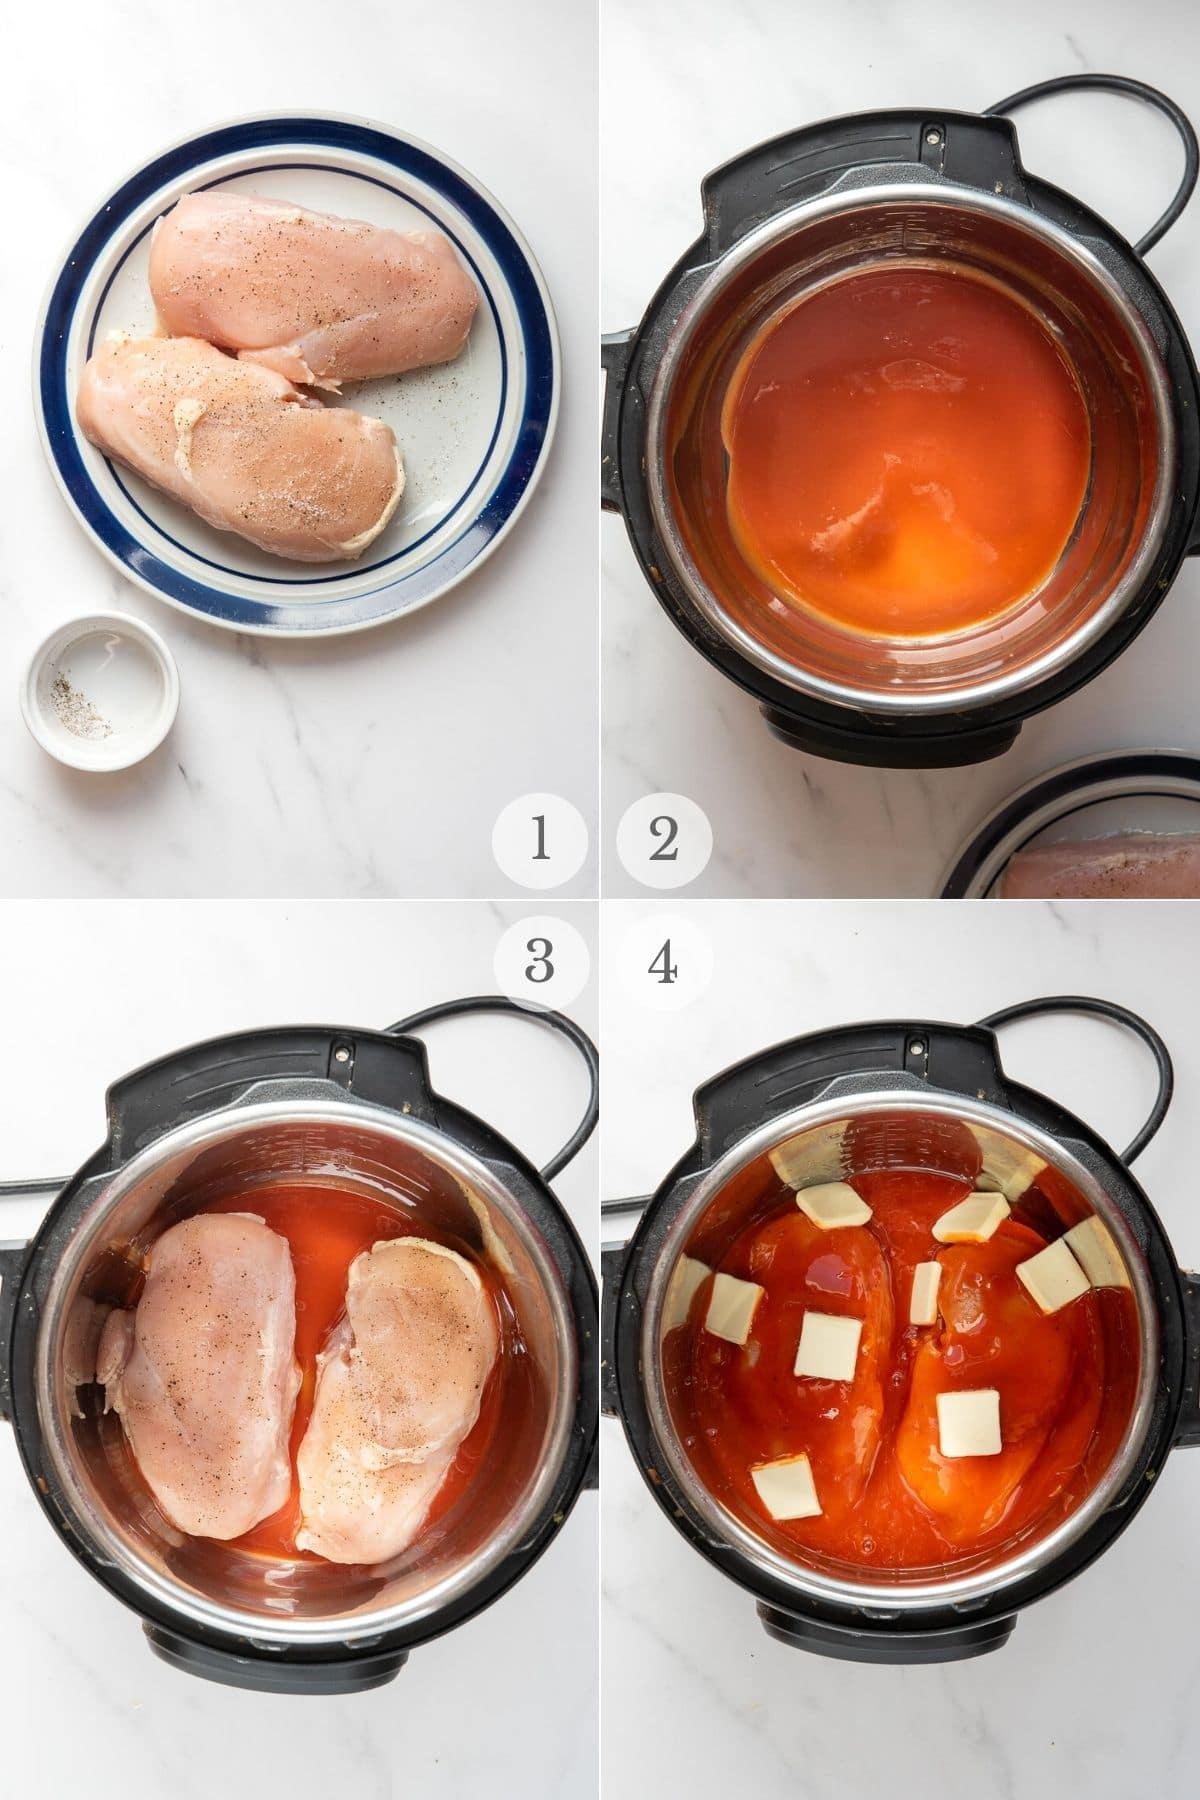 instant pot buffalo chicken recipe steps 1-4